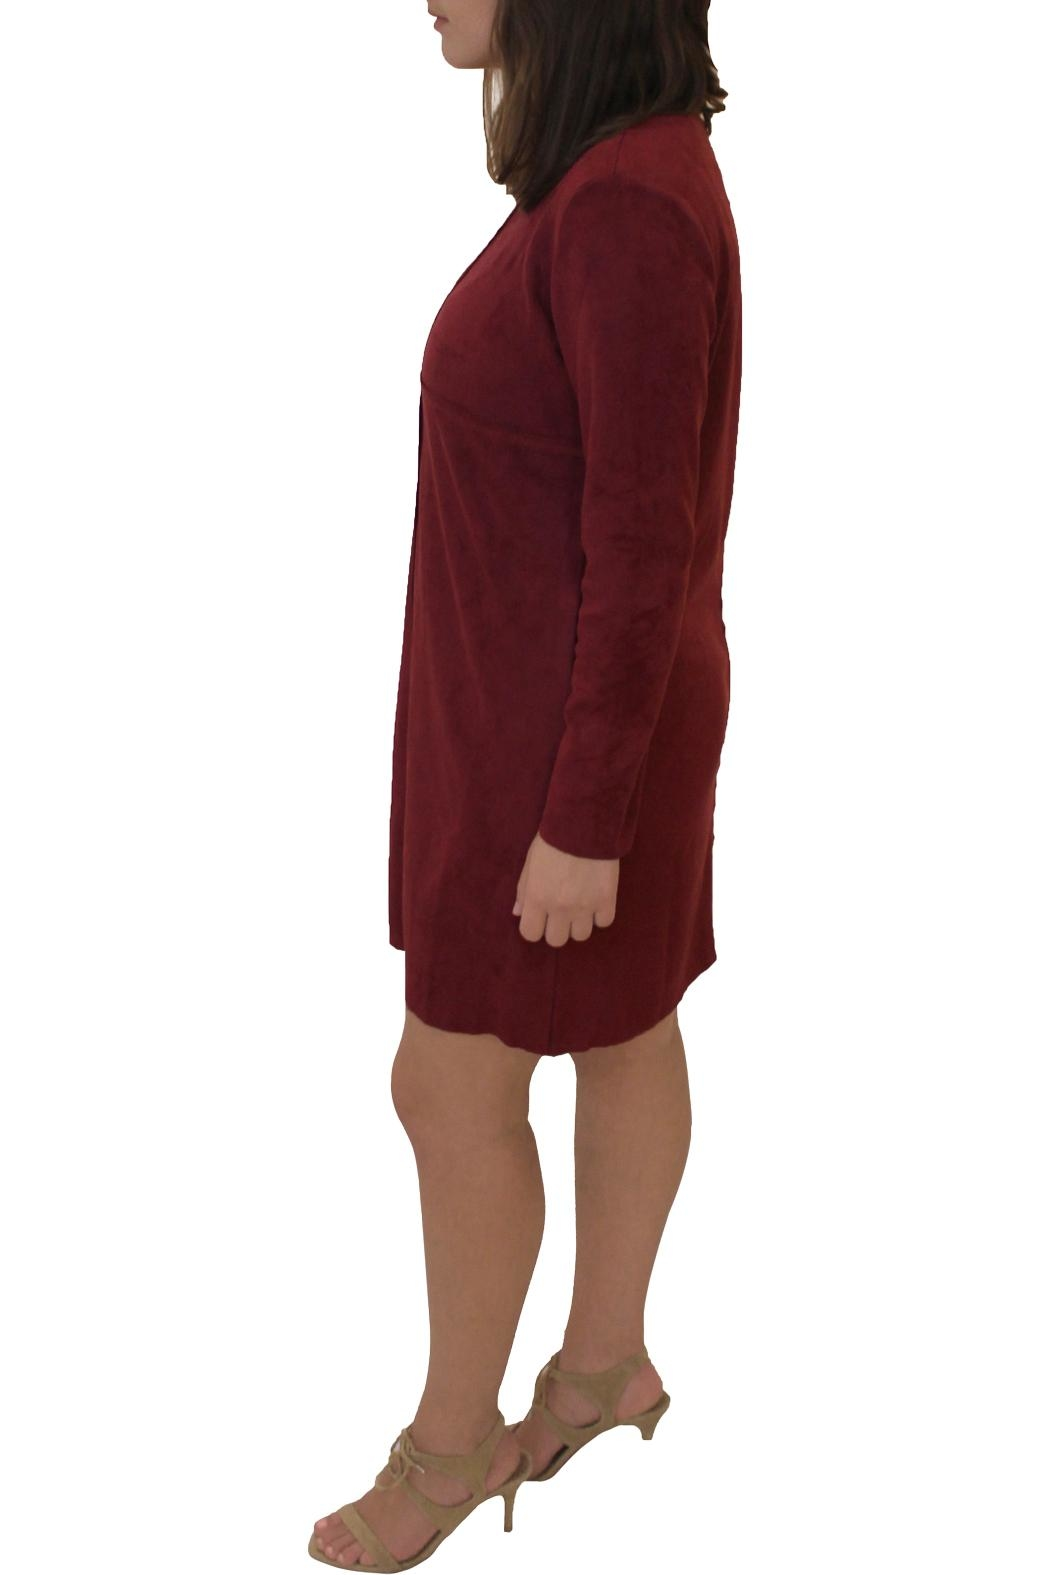 Joh Apparel Faux Suede Dress - Front Full Image